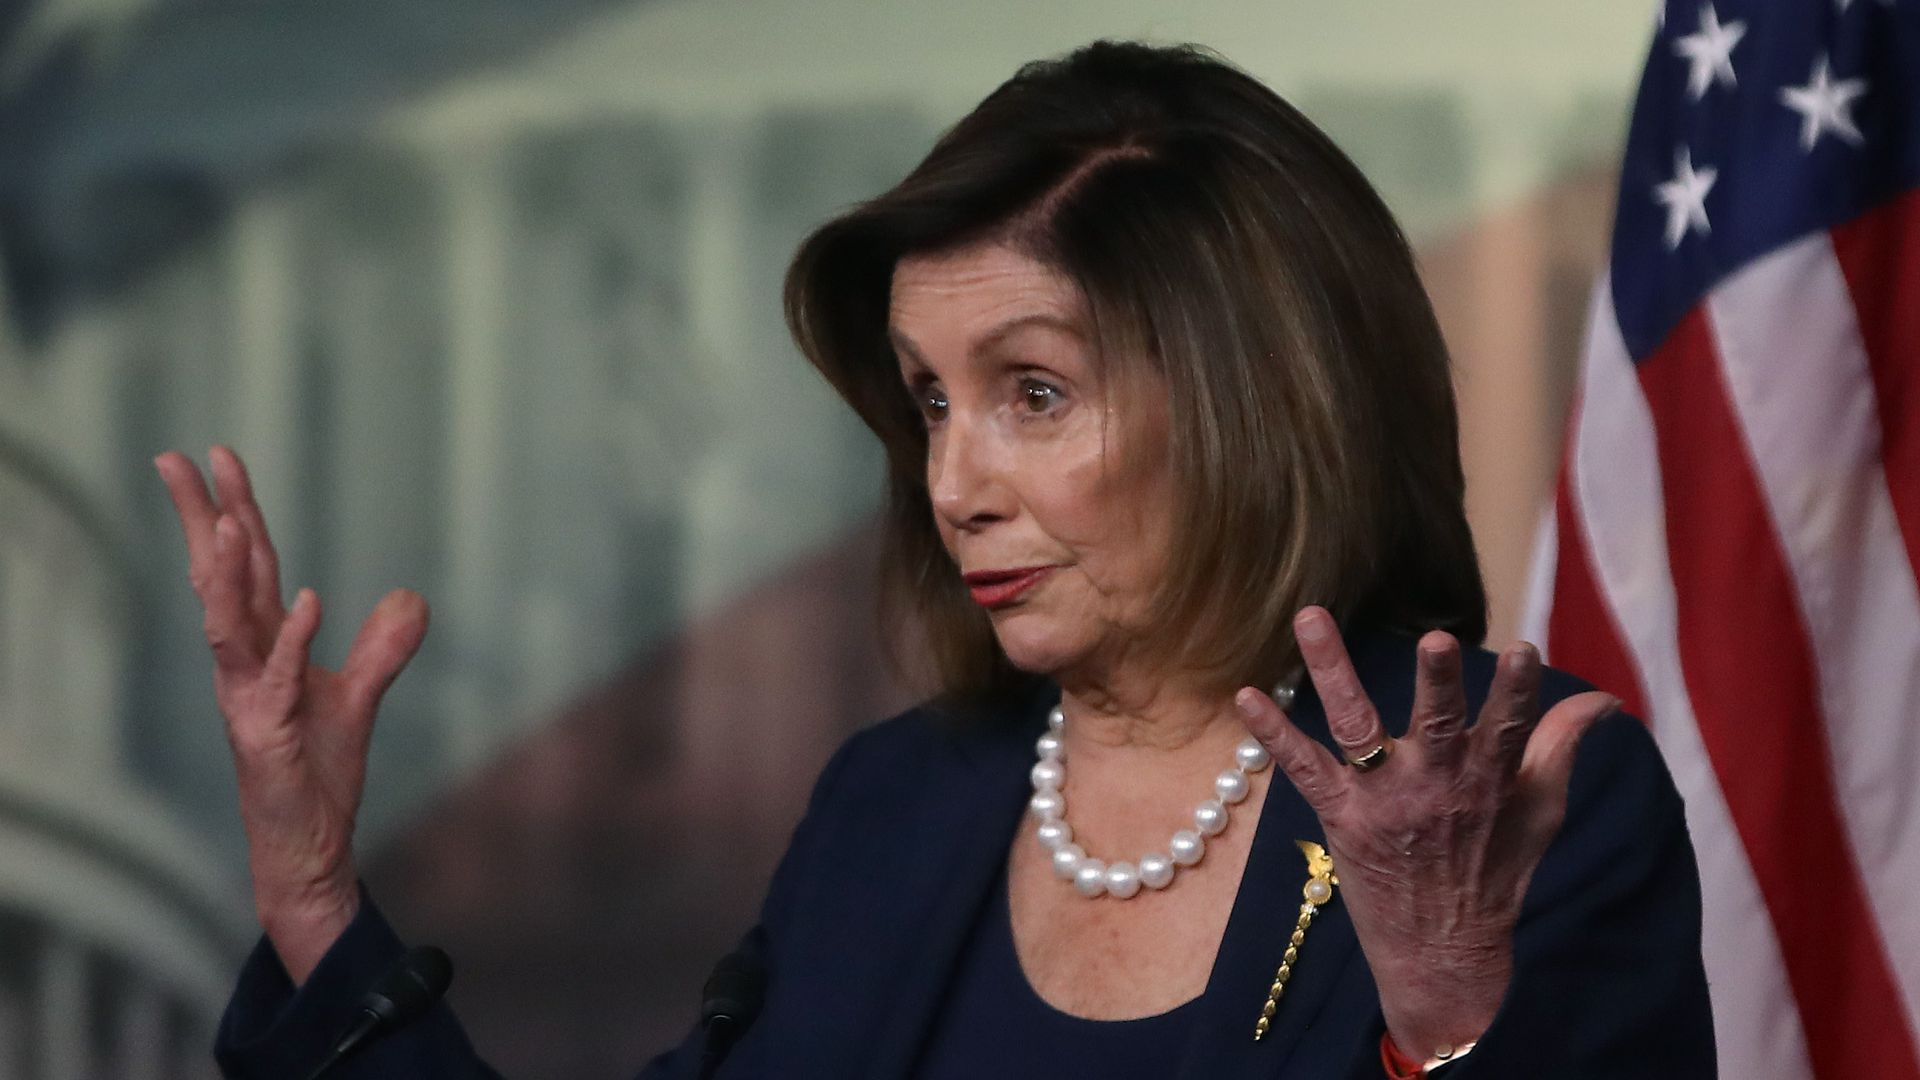 """Pelosi slams McConnell trial rules as """"deliberately designed to hide the truth"""""""